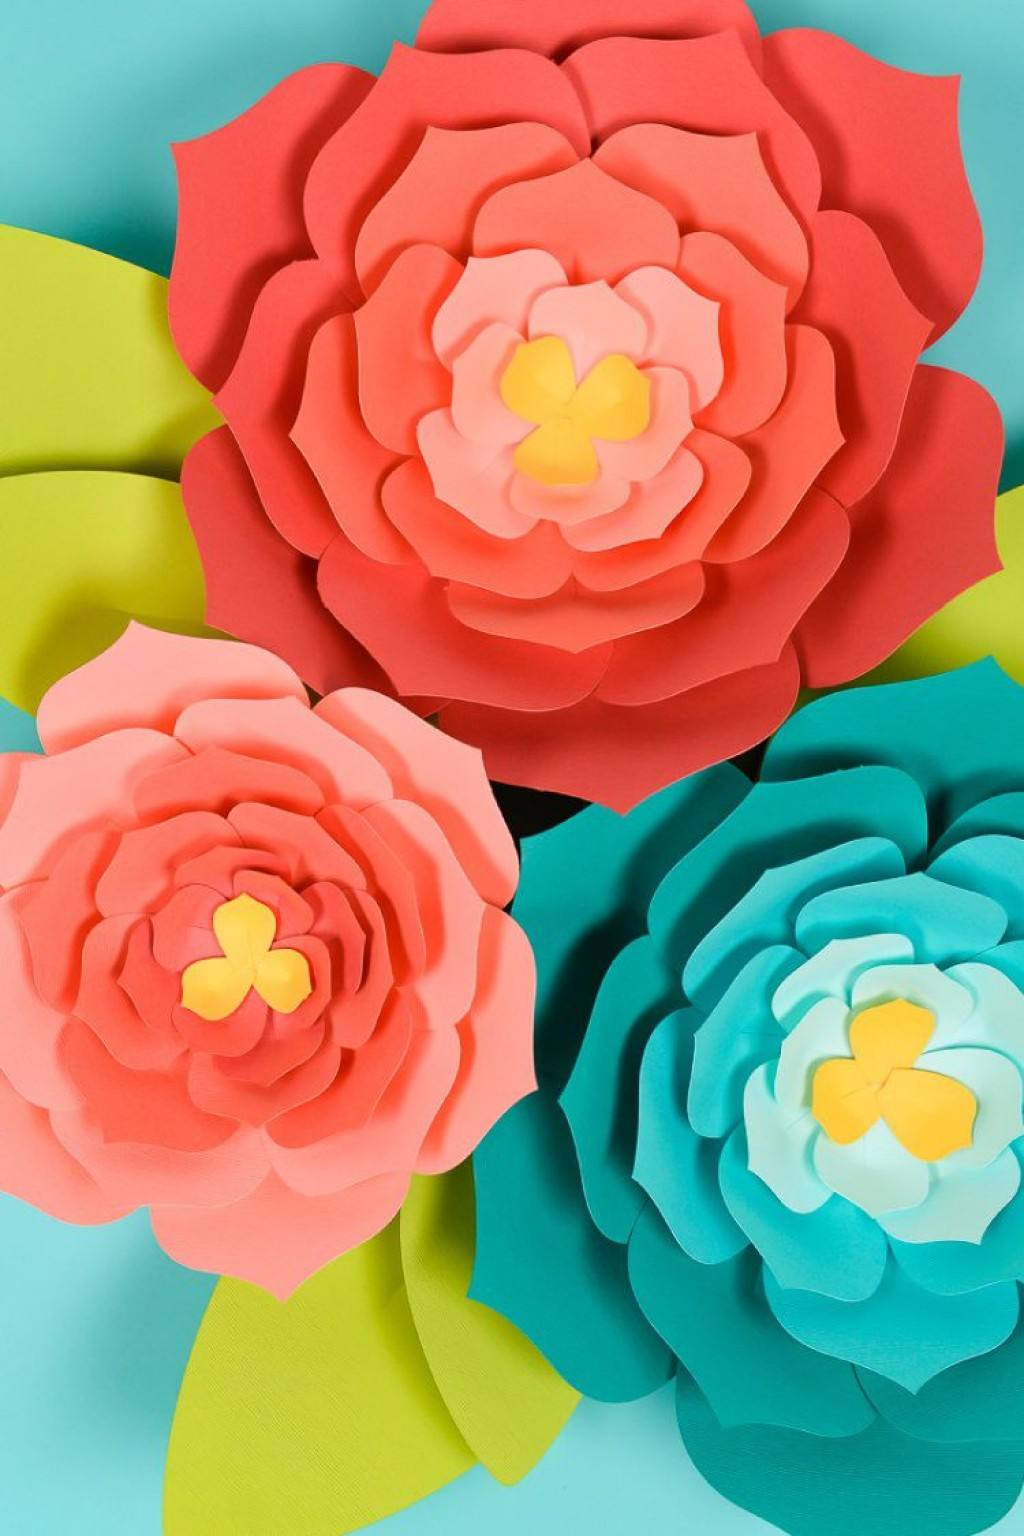 008 Fearsome Giant Paper Flower Template Free Download Sample Large